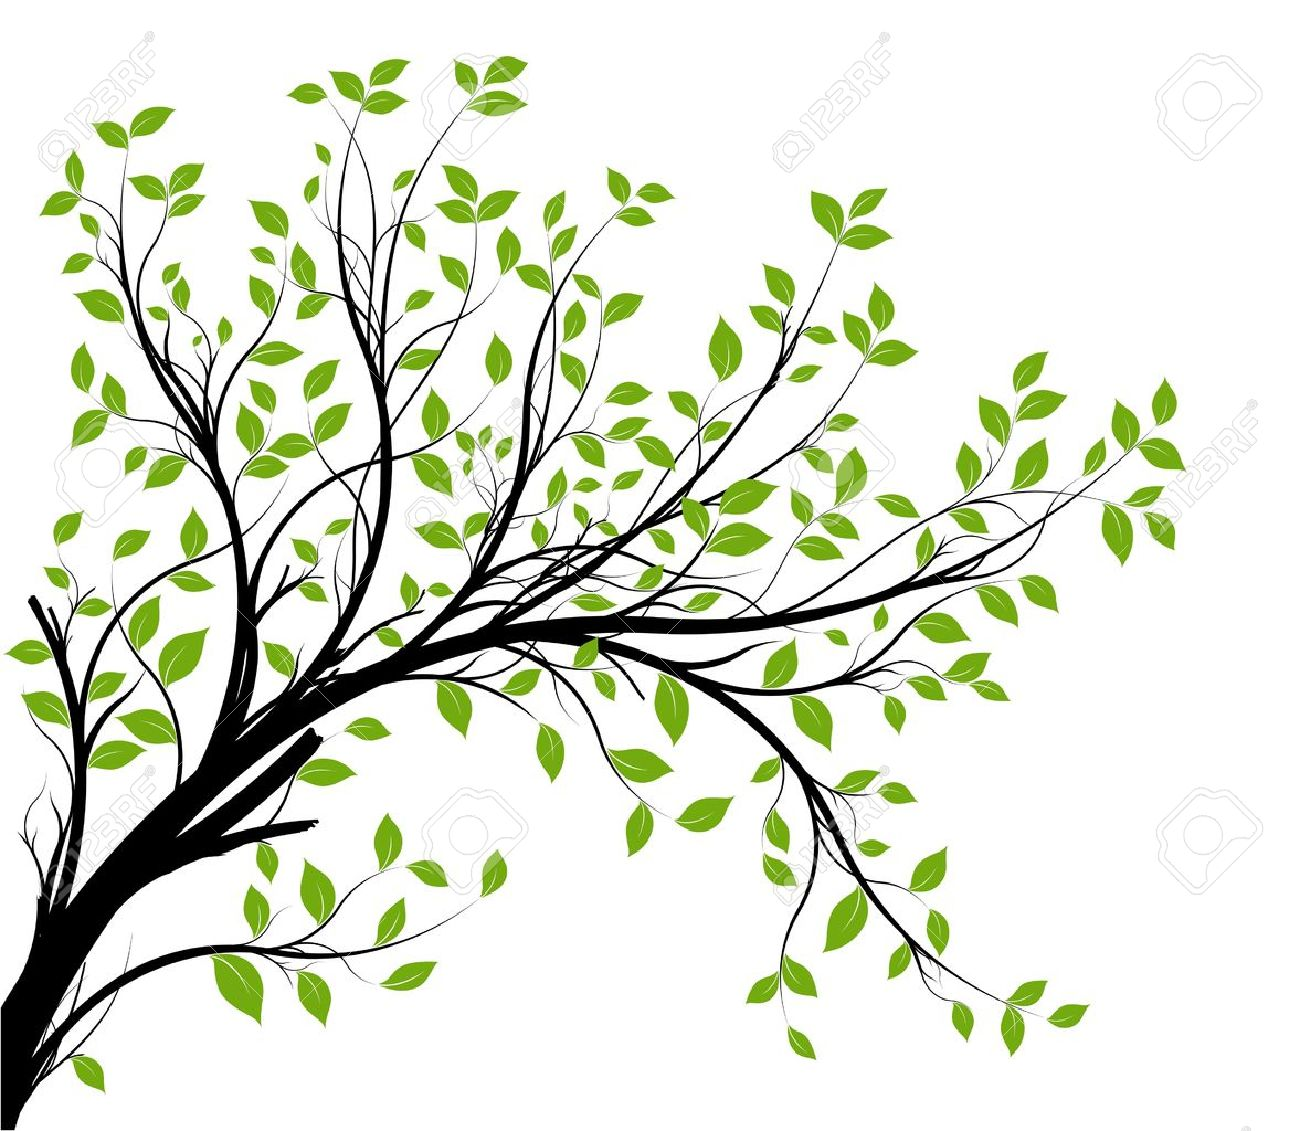 vector - decorative branch silhouette and green leaves, white background - 12490277